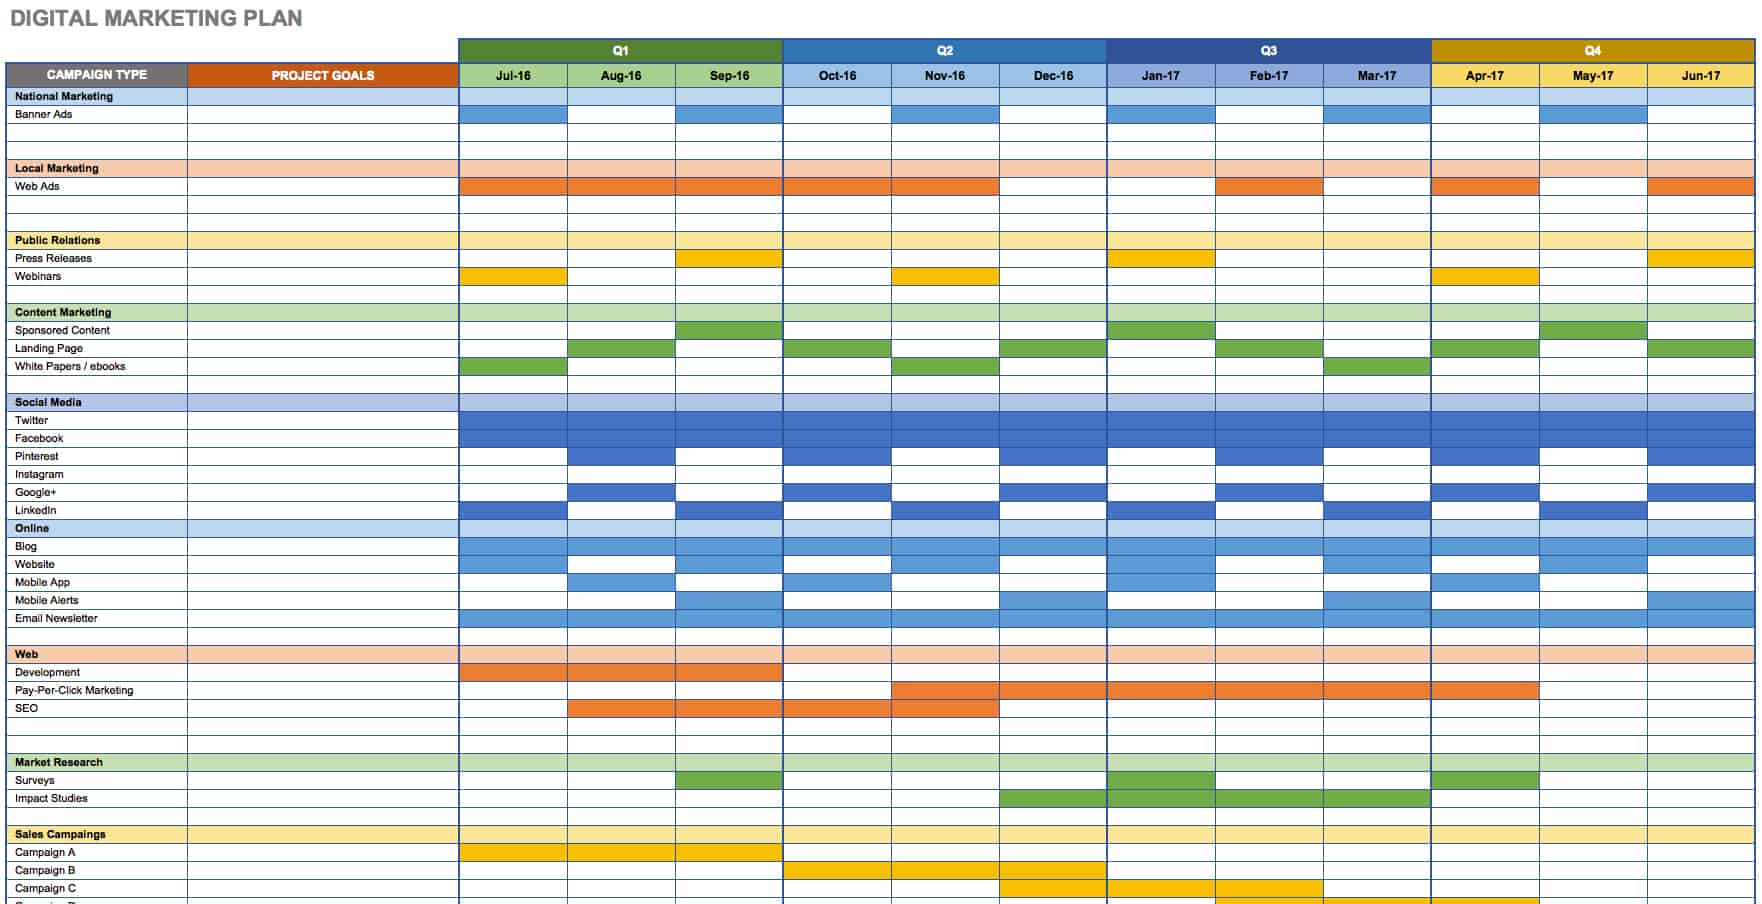 Free Marketing Plan Templates For Excel Smartsheet - Unique calander templates scheme